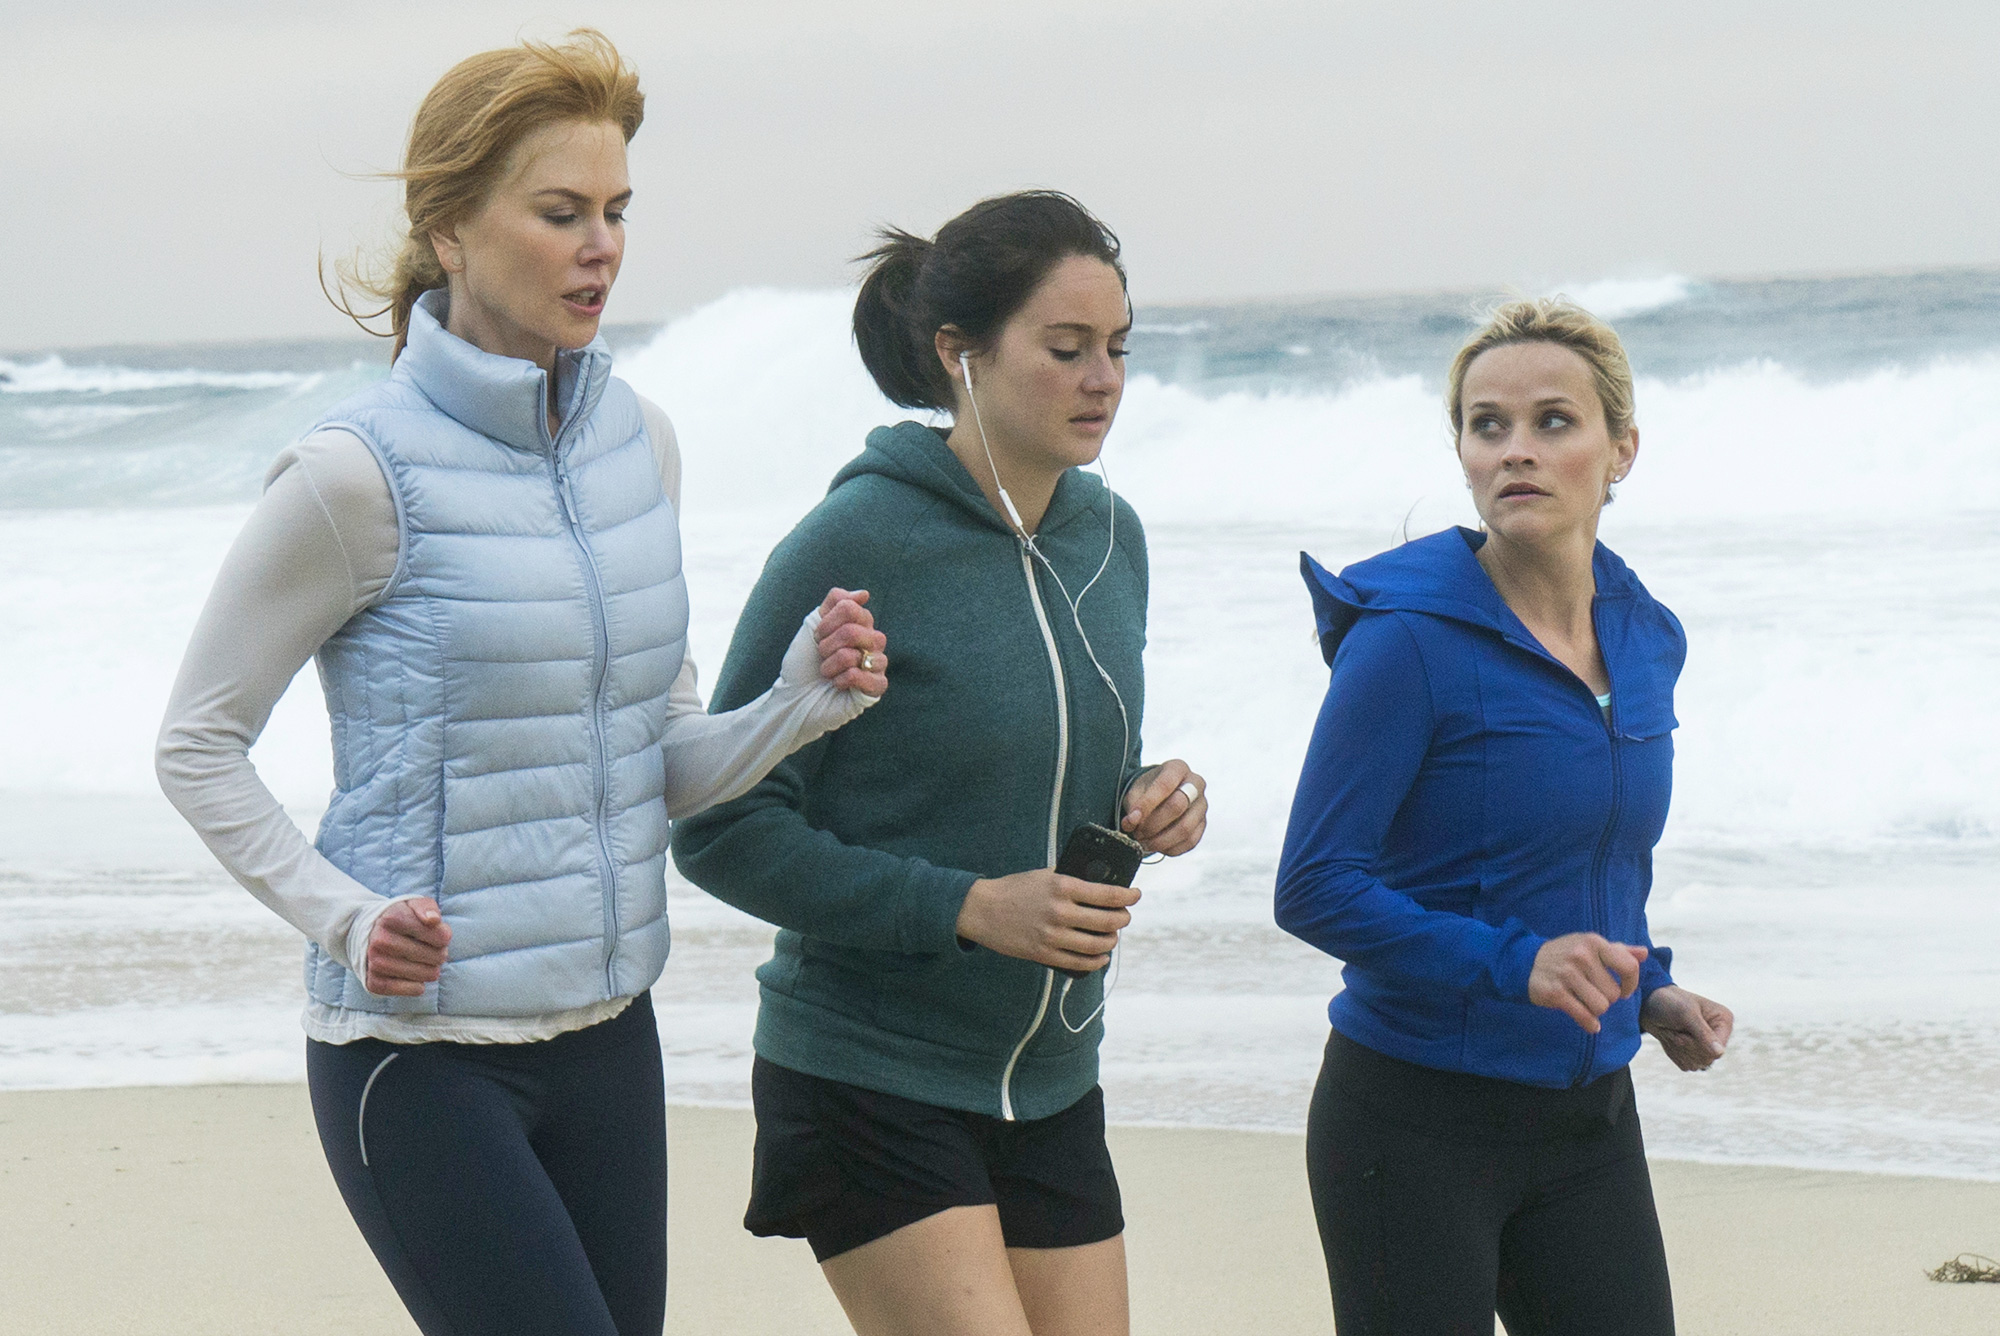 Big Little Lies: Shailene Woodley, Laura Dern, Zoë Kravitz confirmed to return